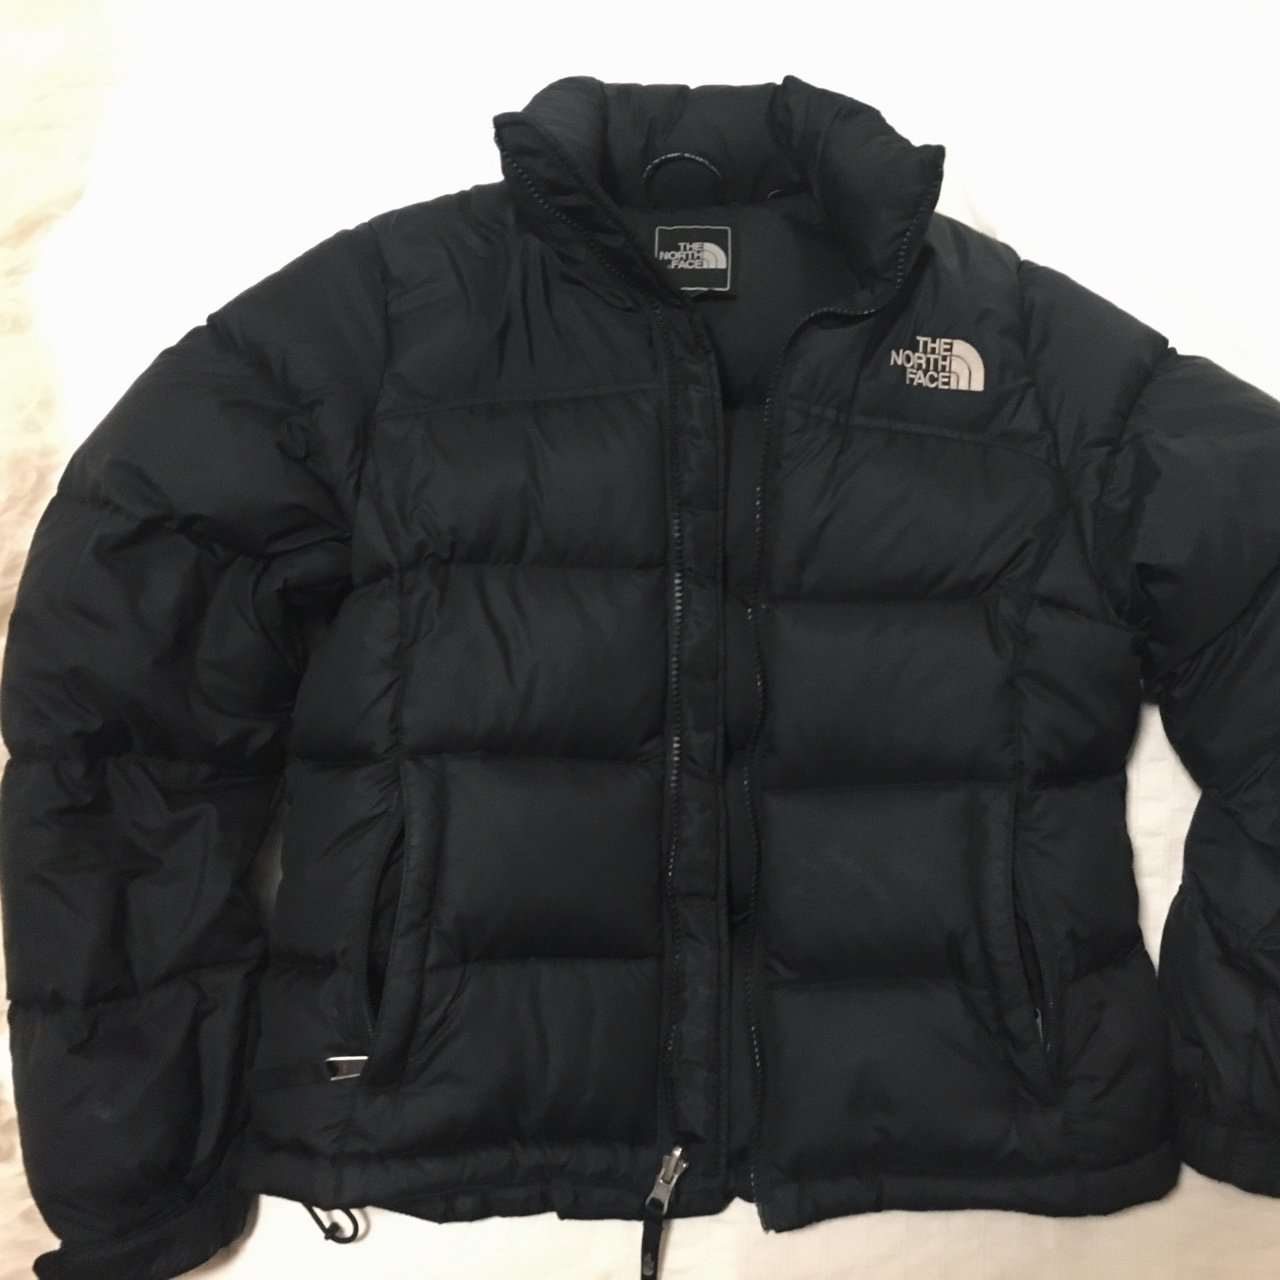 a43544dd3f Ladies The North Face Nuptse 700 puffer jacket ✨🌈 would fit - Depop